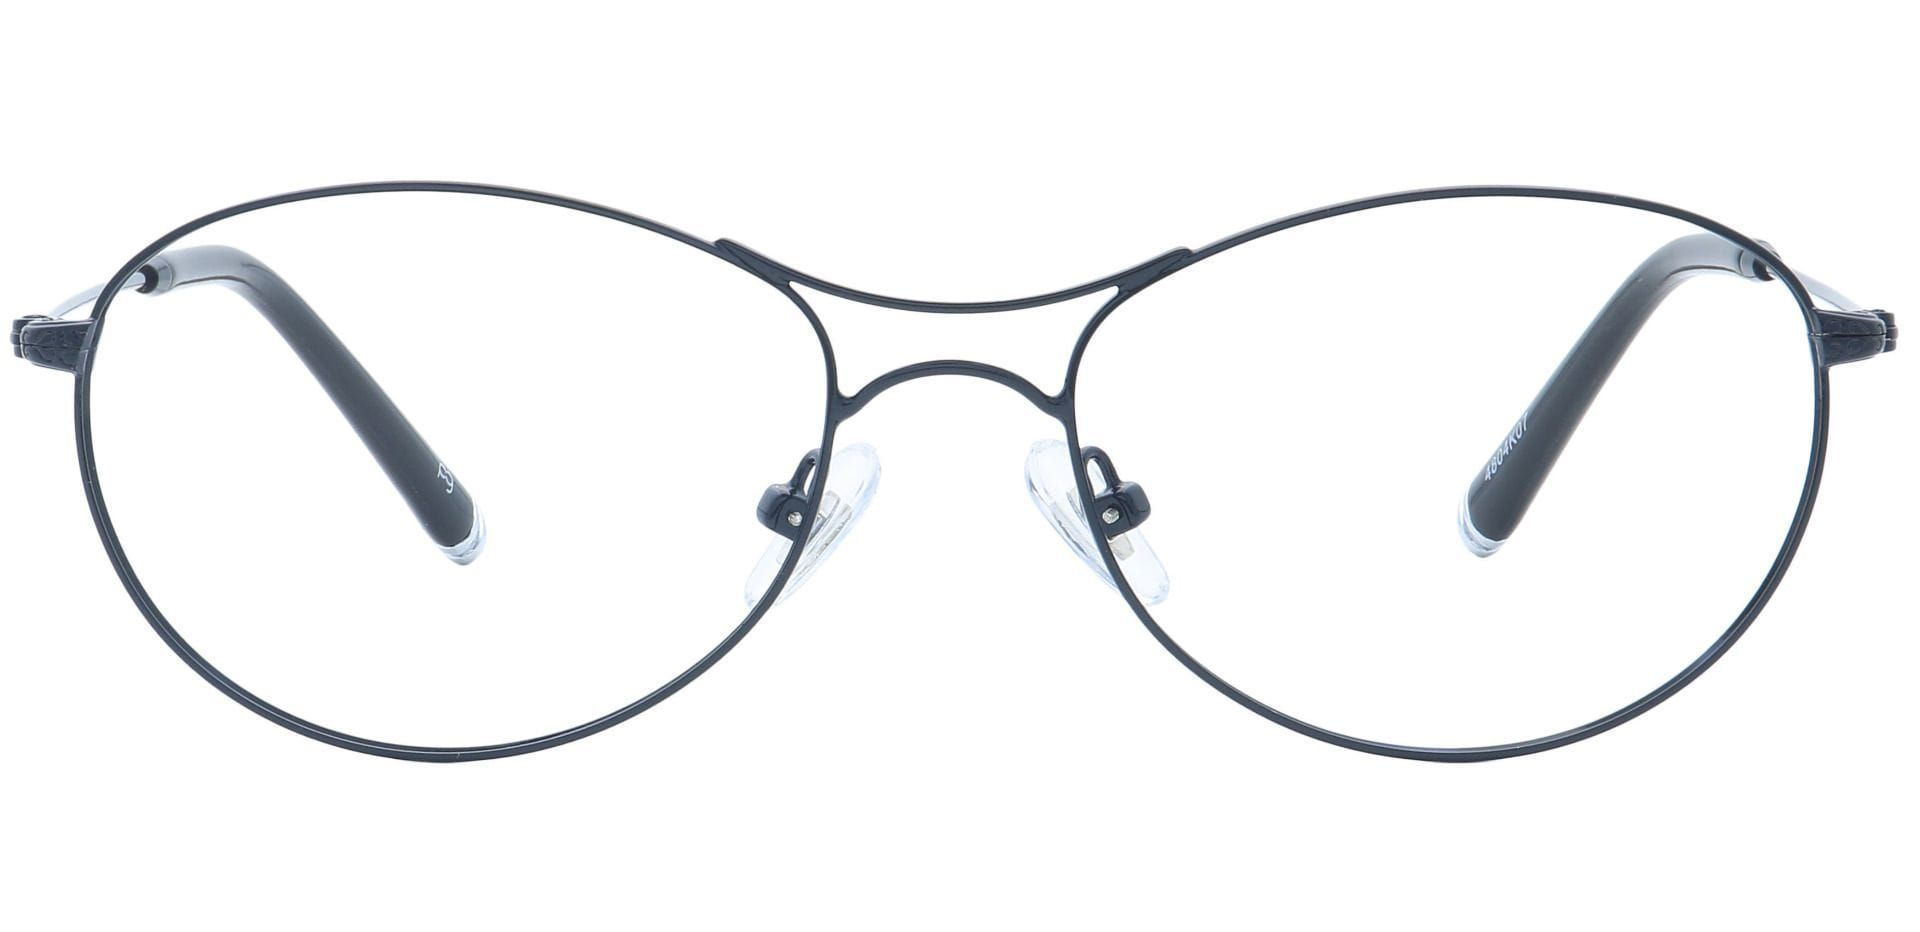 Zadie Aviator Prescription Glasses - Black